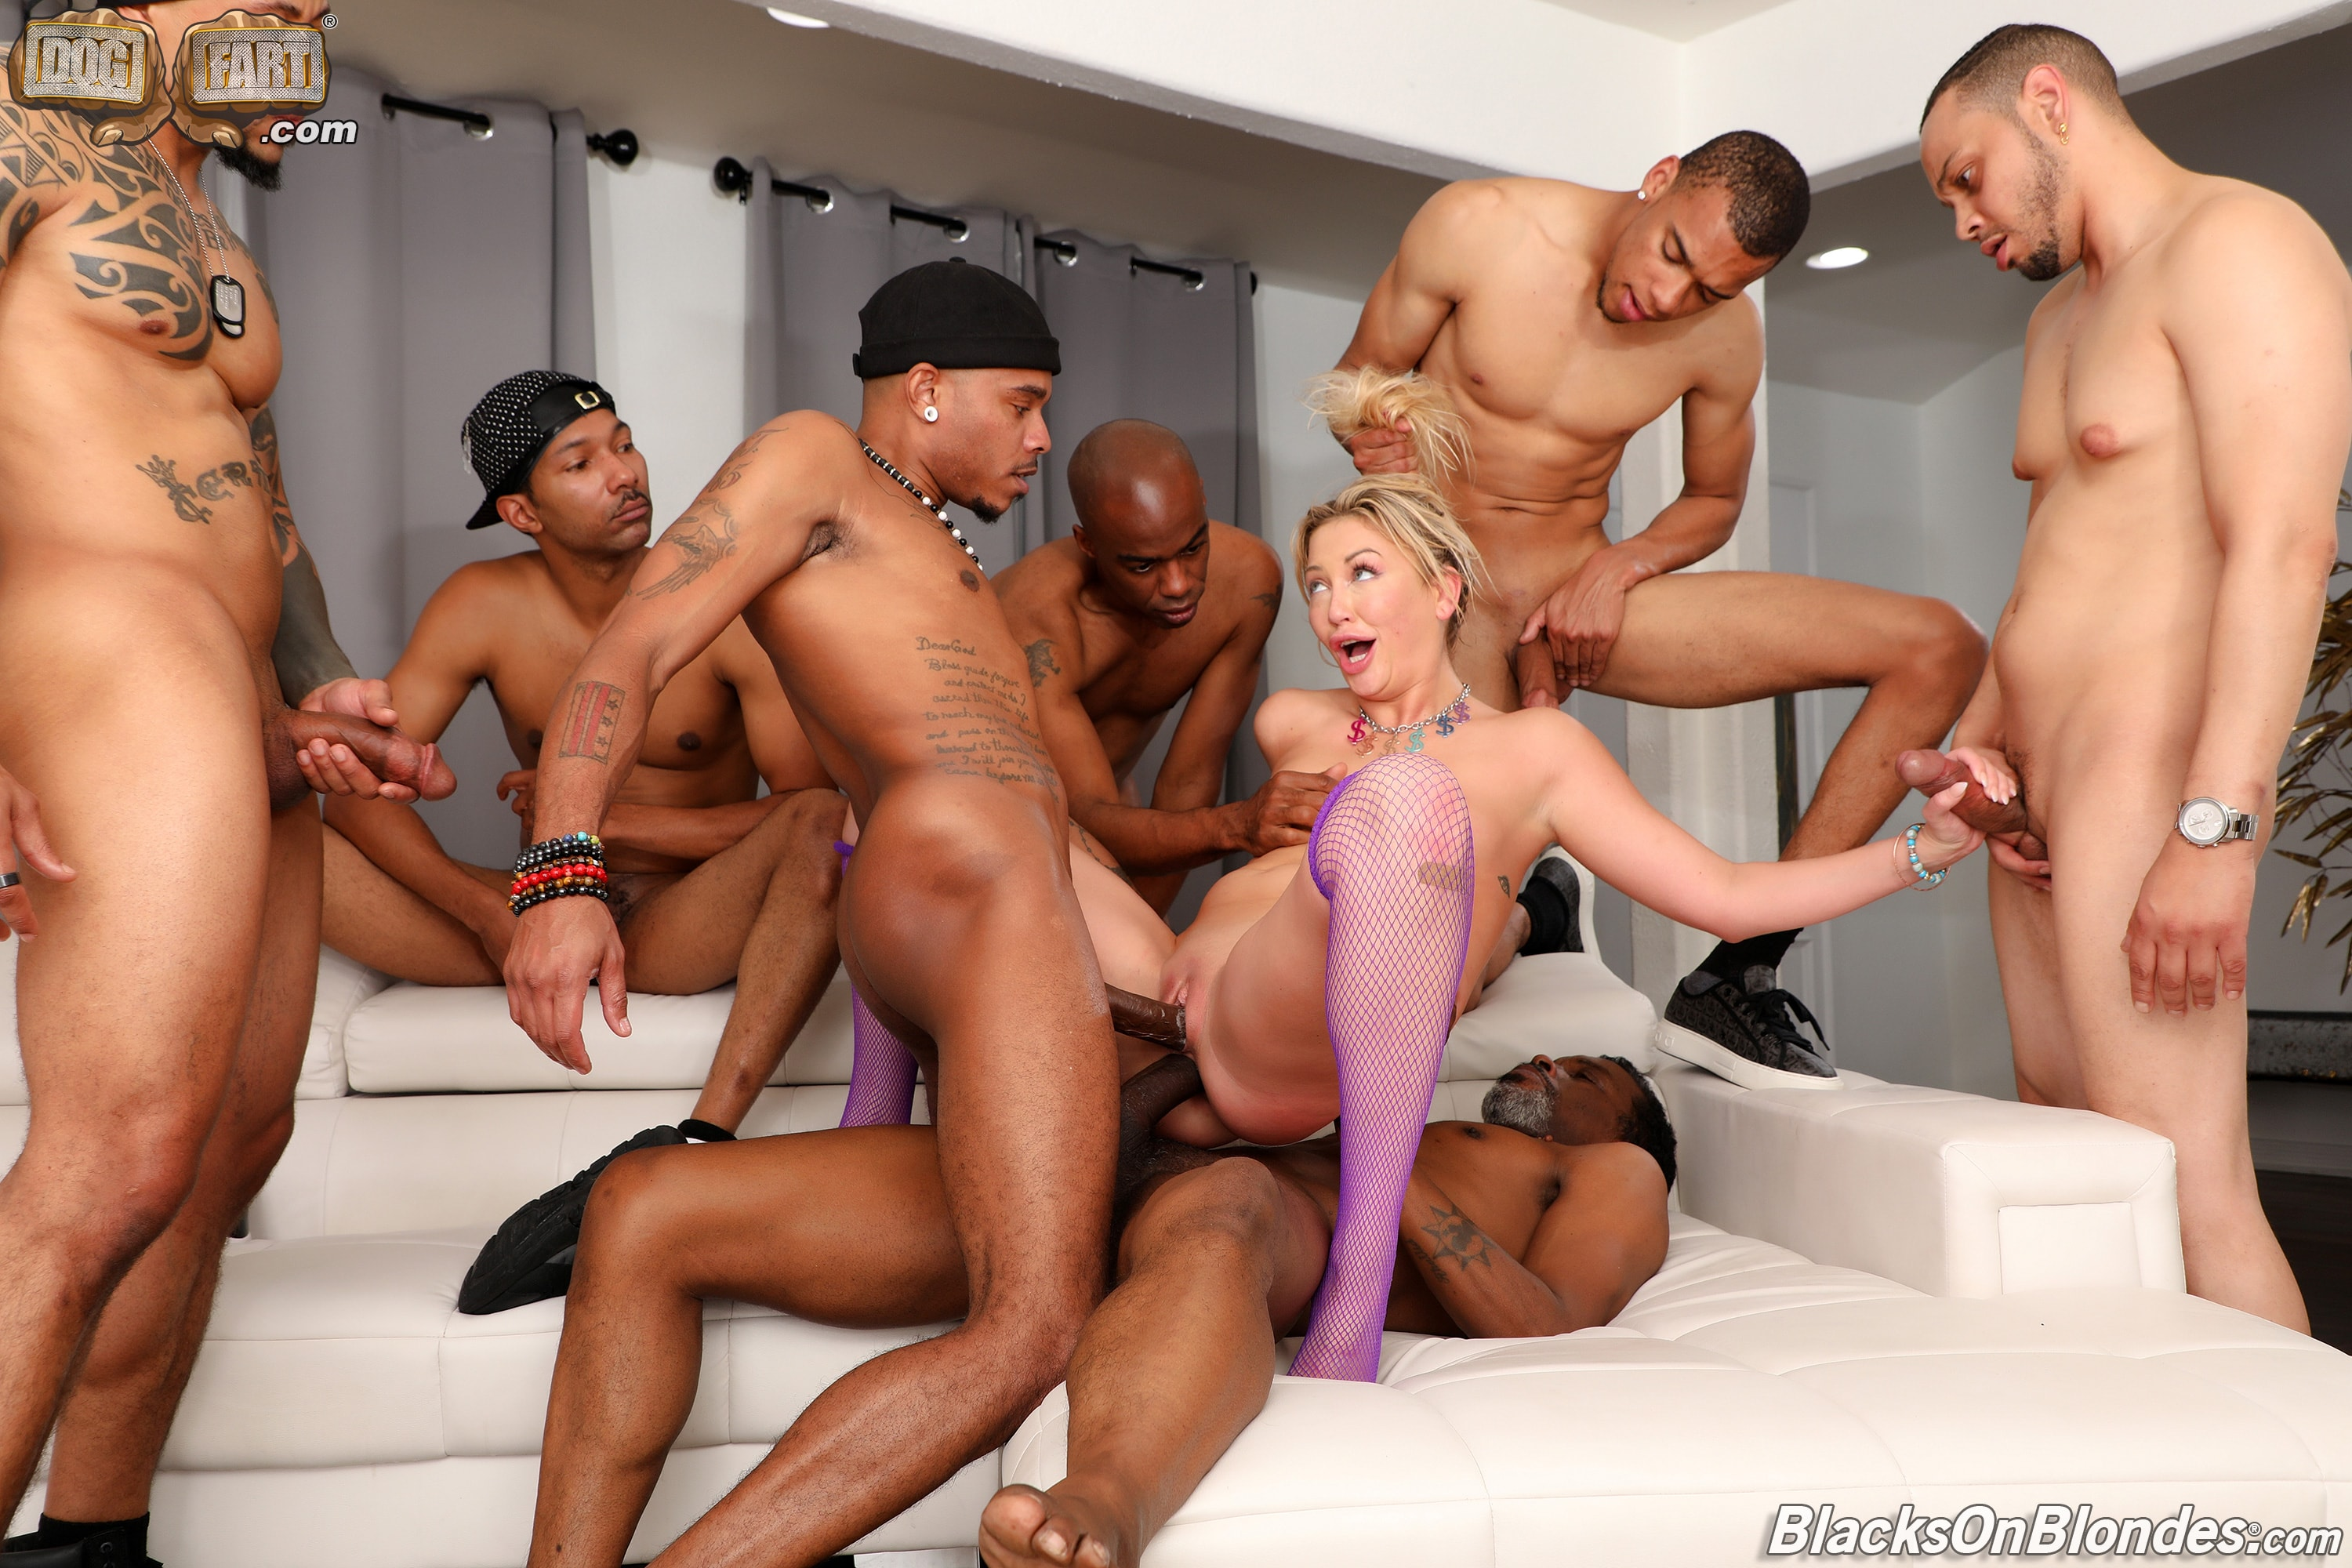 Adira Allure - Adira Allure - Blacks On Blondes - Scene 2 | Picture (24)